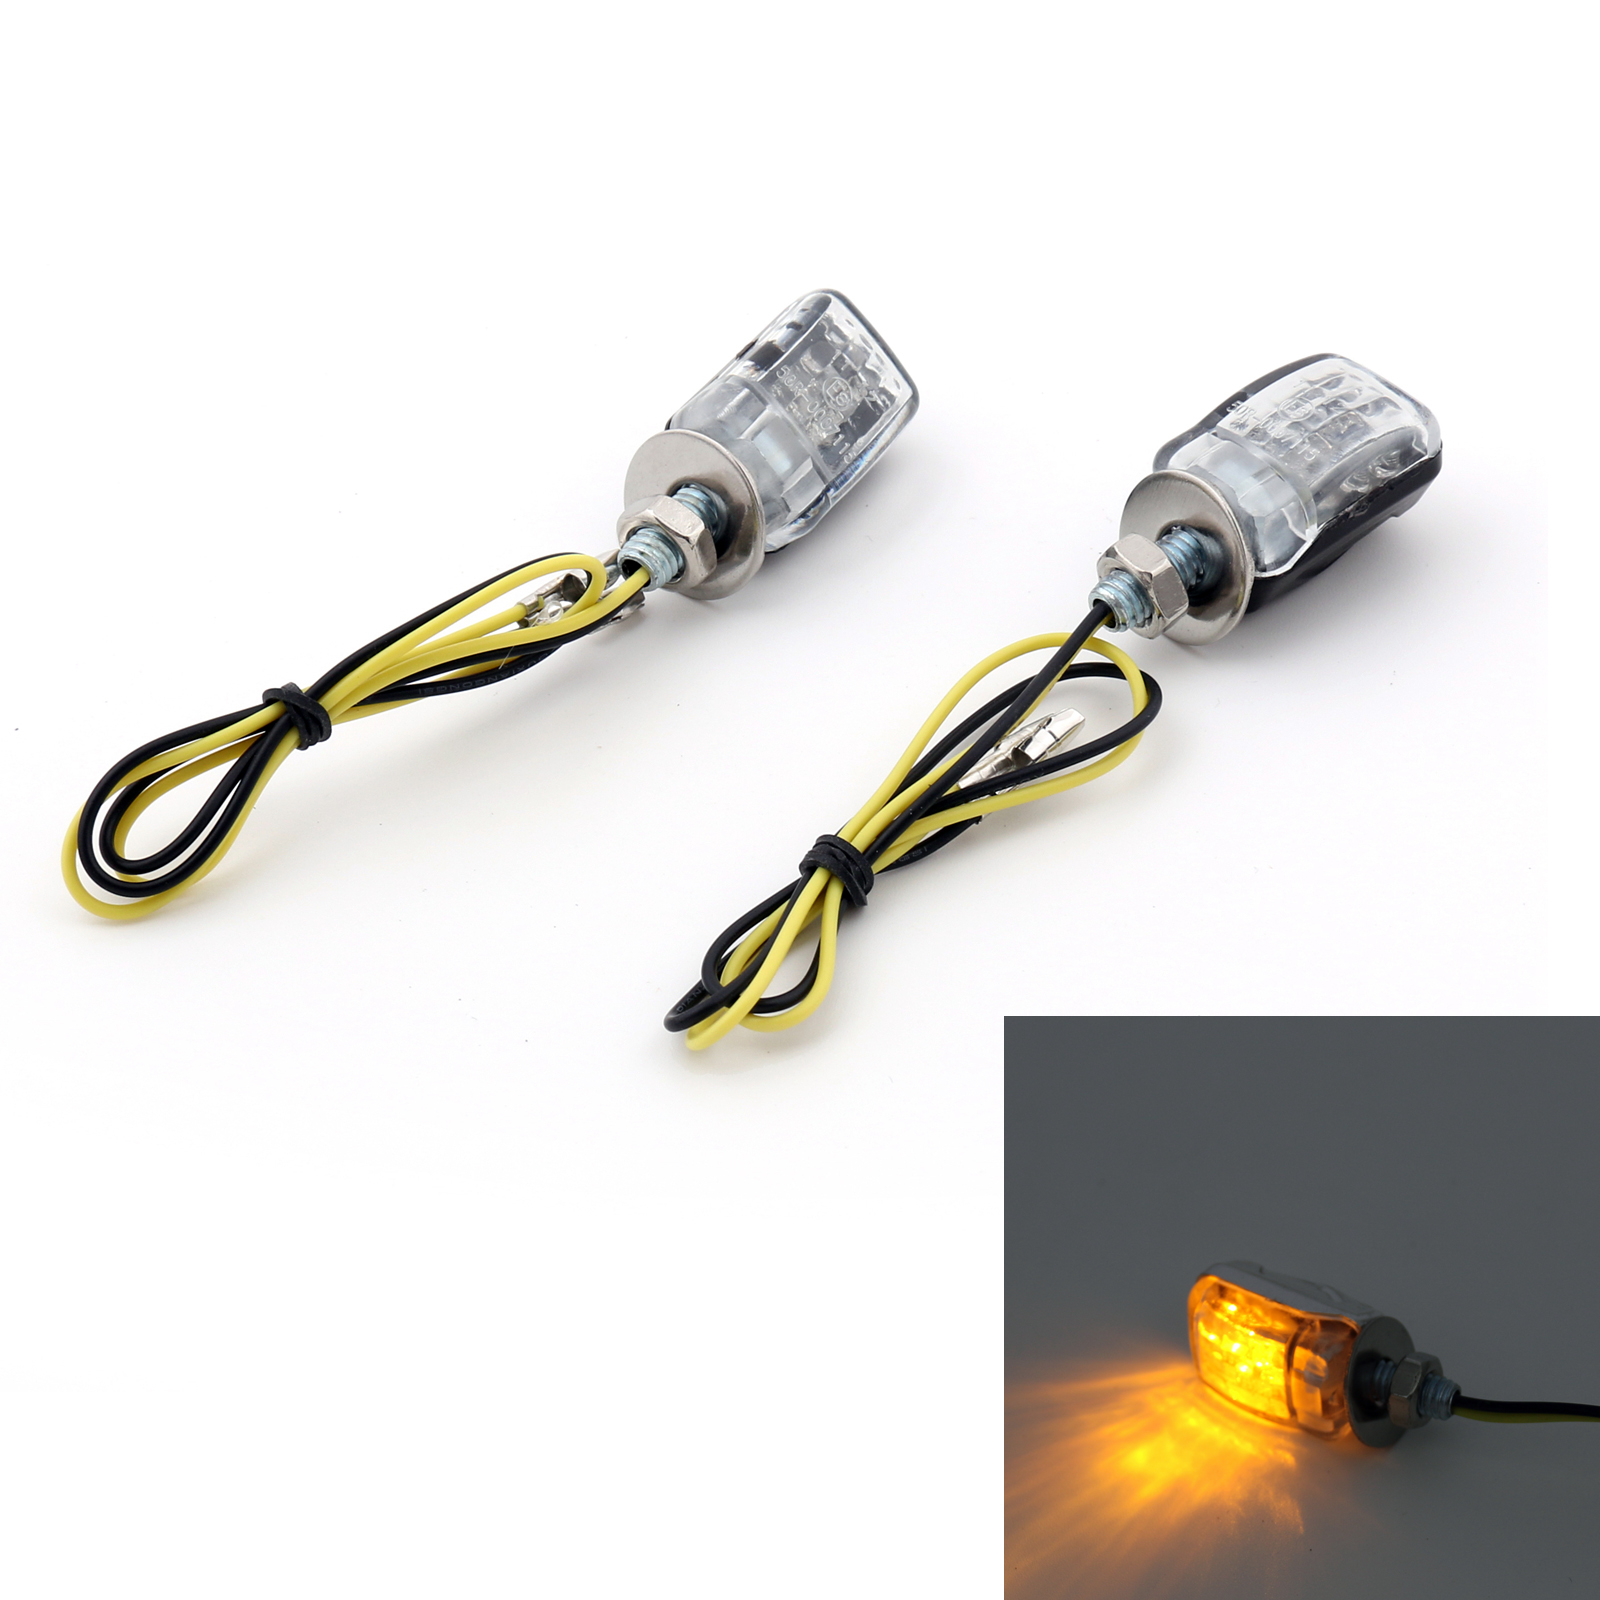 Areyourshop LED Black Micro Mini Tiny Small Indicators Turn Signals Motorcycle MotorBike